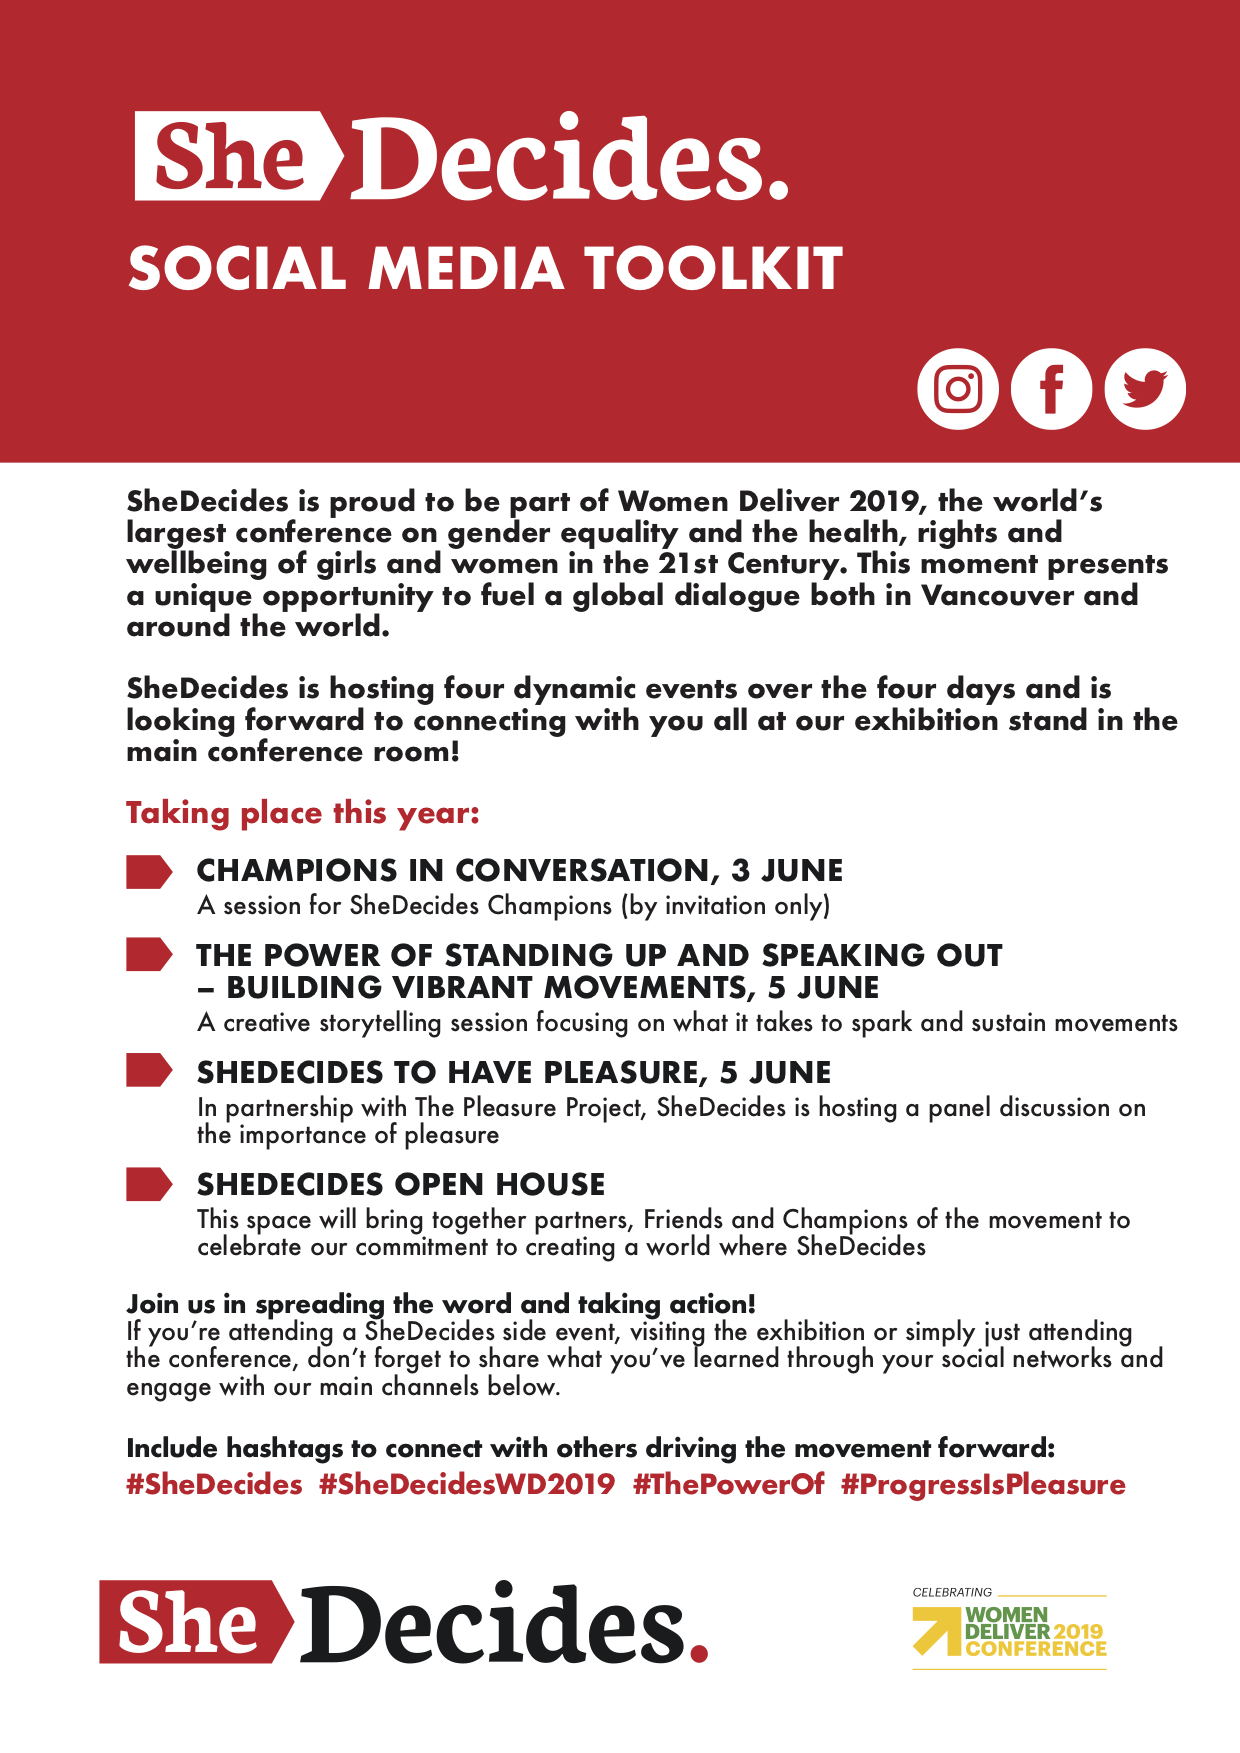 Your #SheDecidesWD2019 Social Media Toolkit is Here! | She